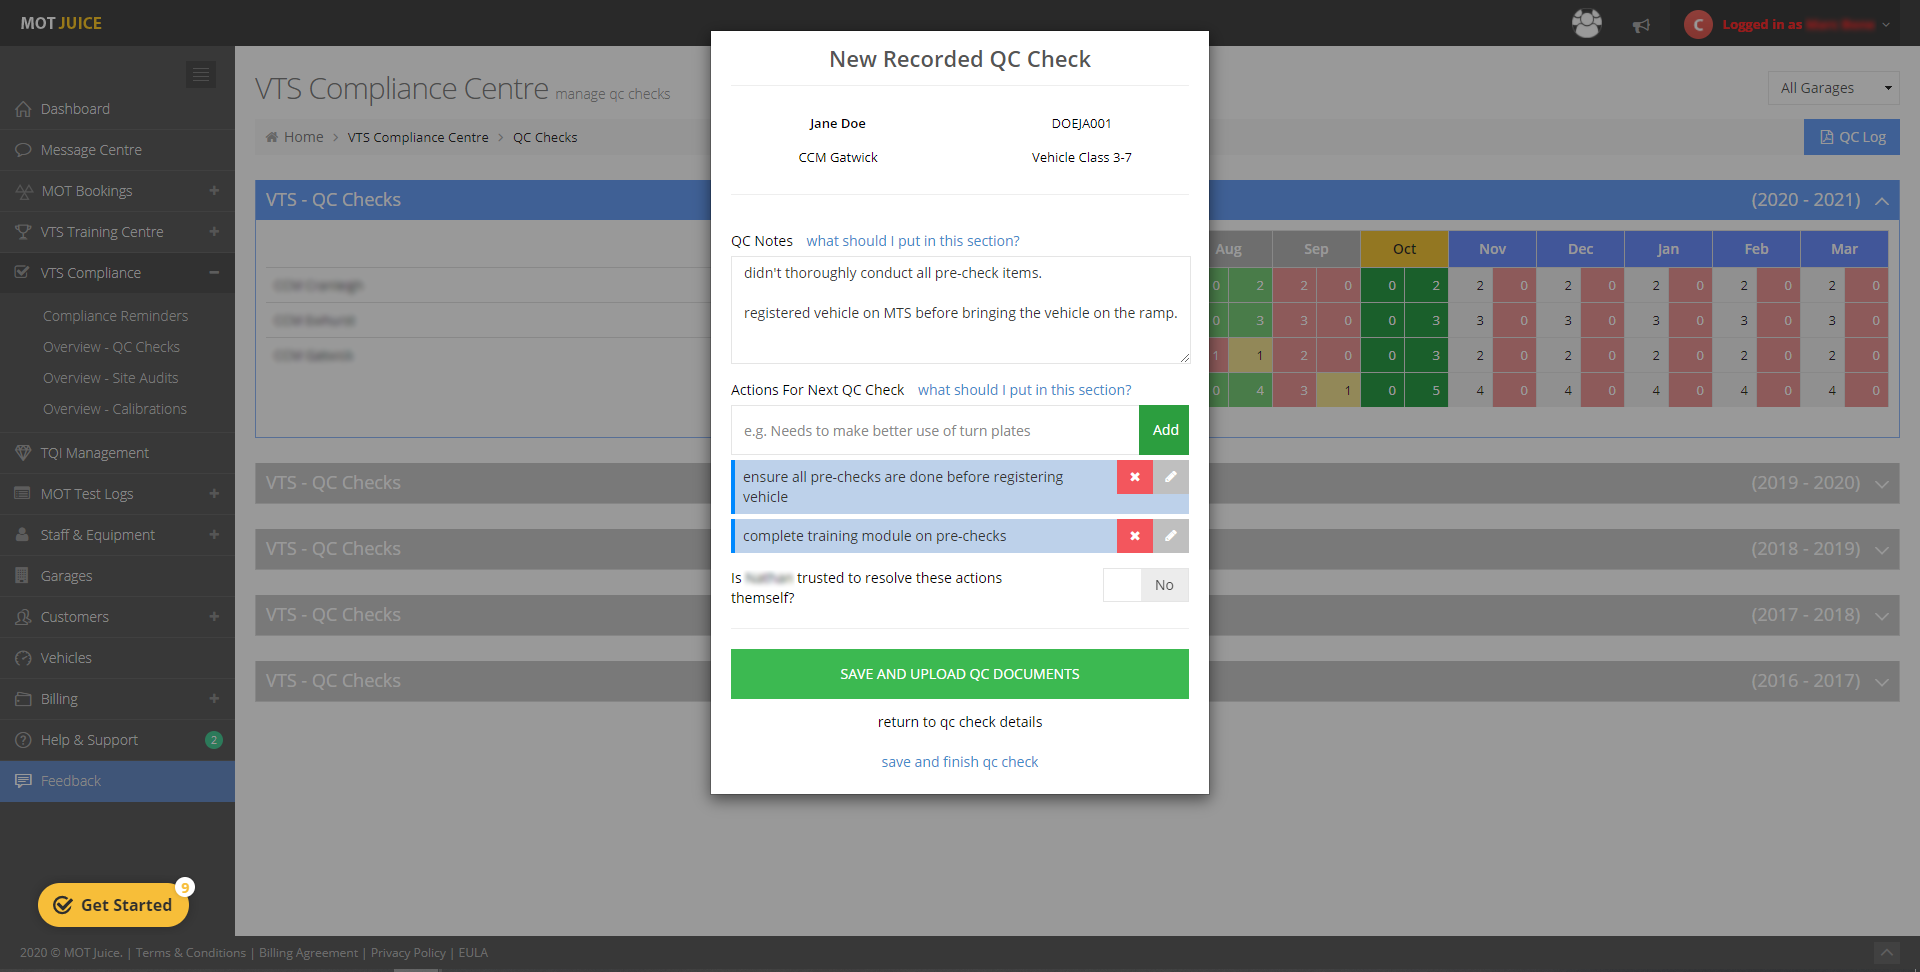 add notes and actions to be rectified for the next qc check